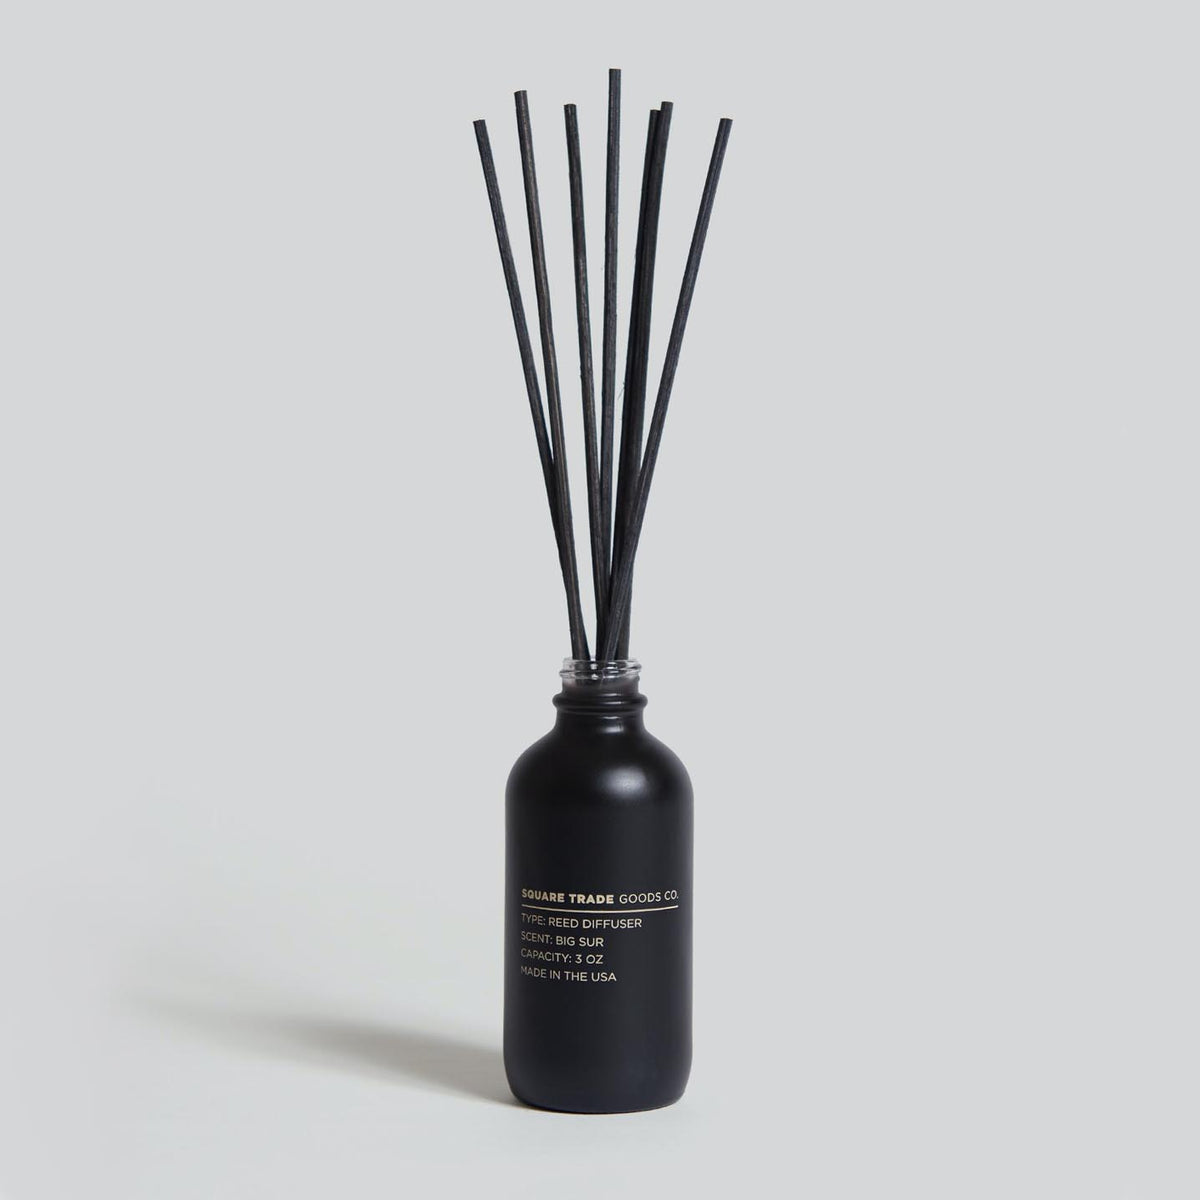 Square Trade Goods Co. Reed Diffuser Big Sur